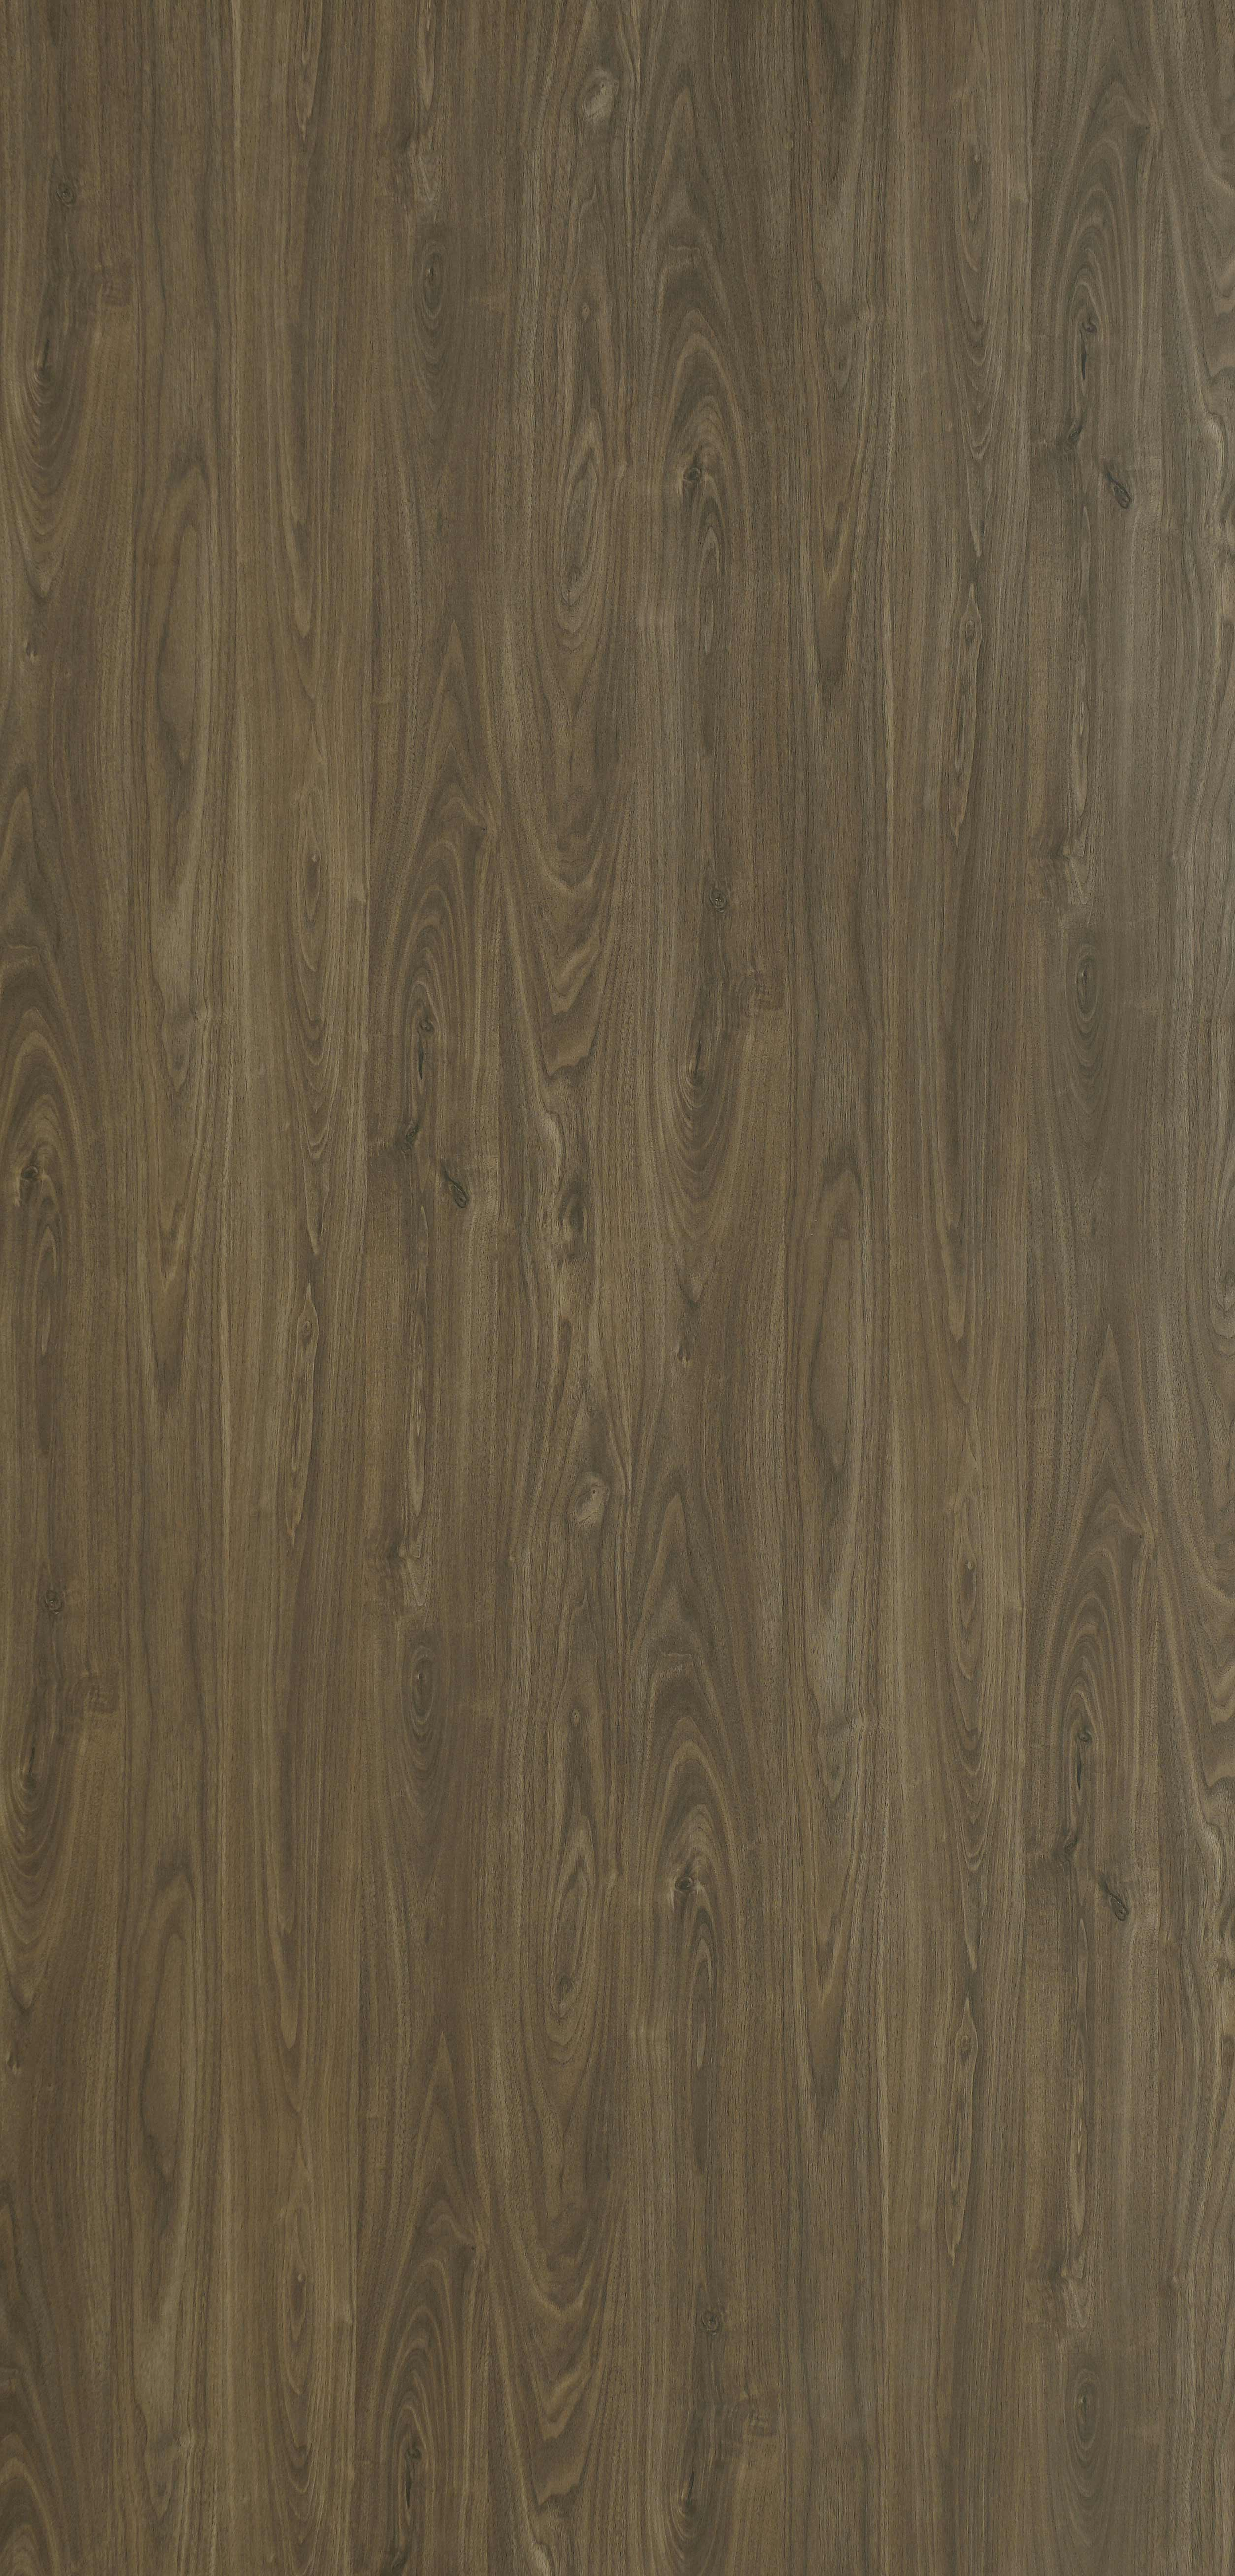 Exclusive Laminate Sheets 6402 Thermo Walnut Nt